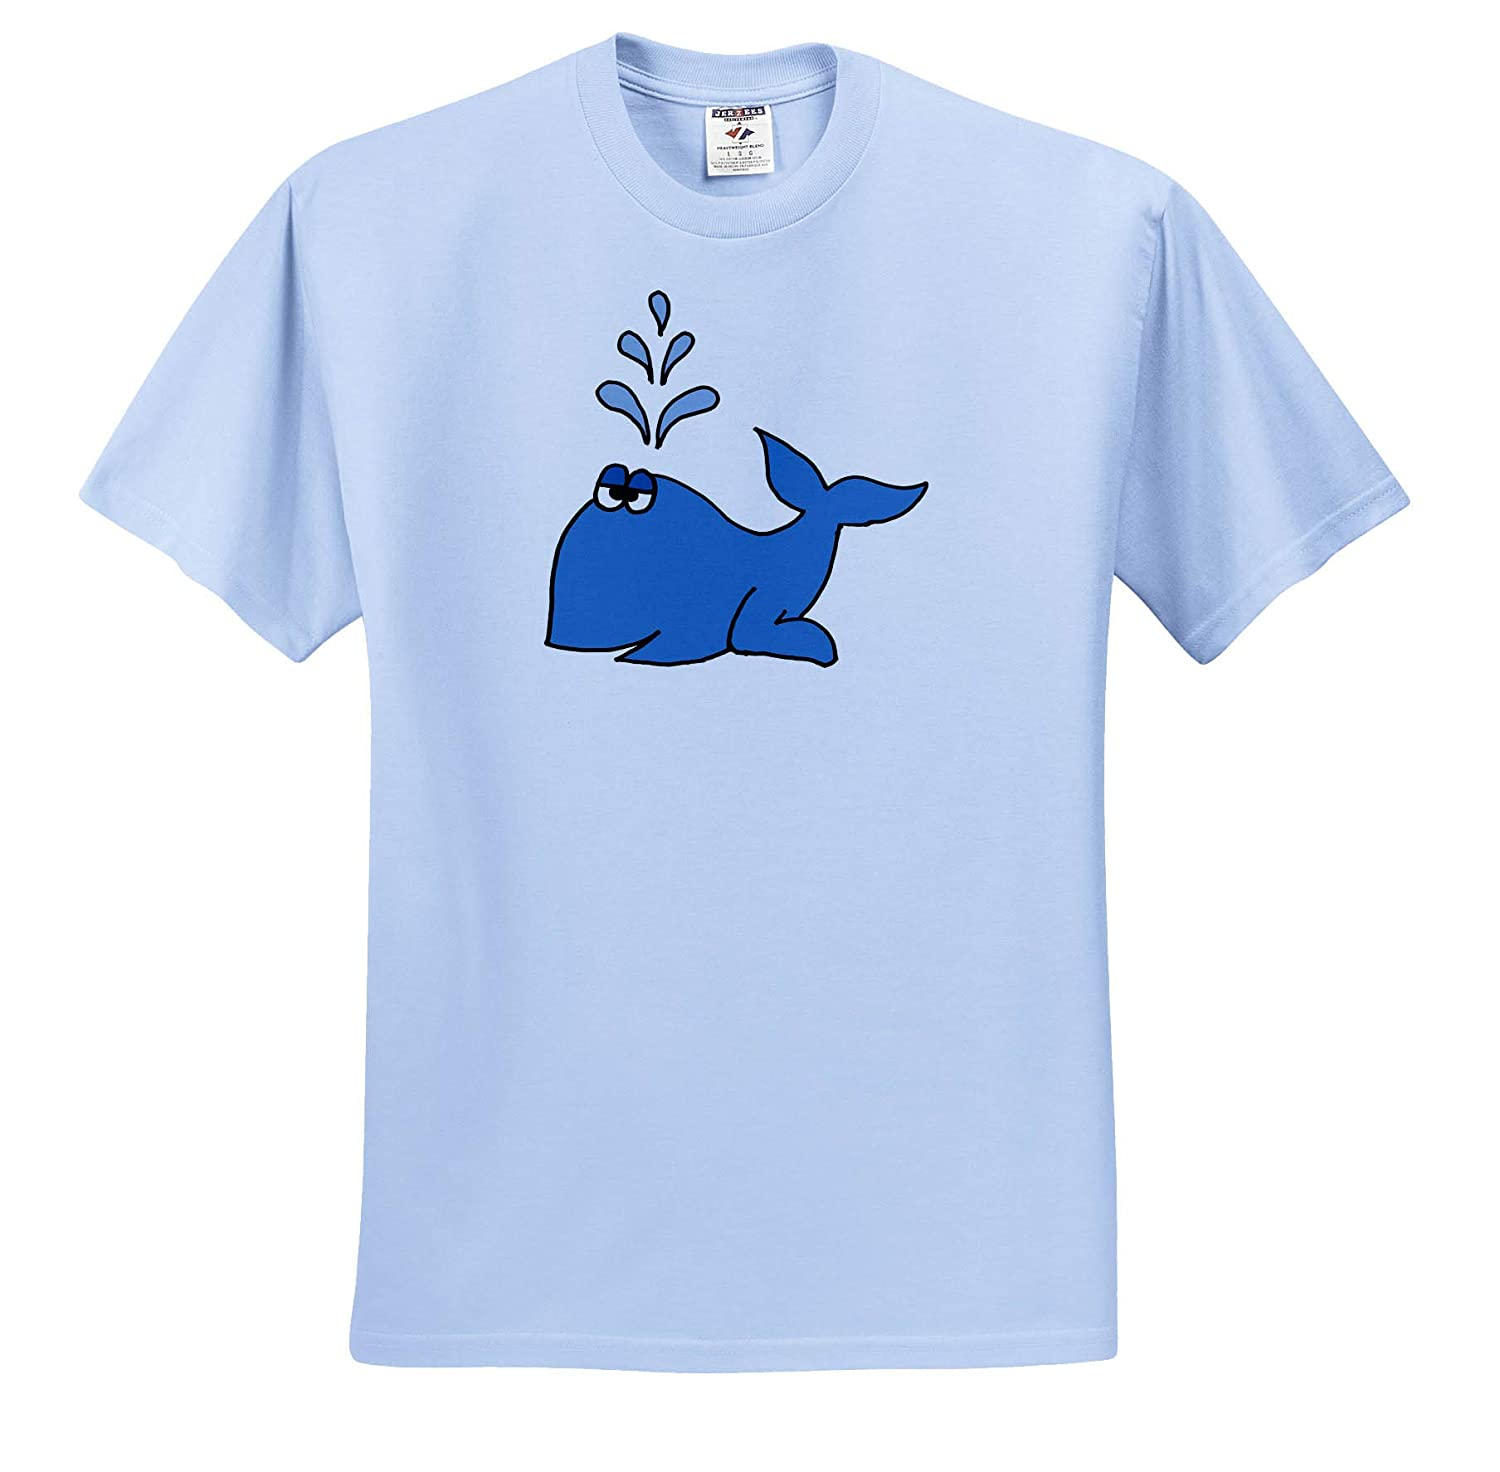 Adult T-Shirt XL at The Beach ts/_317694 3dRose All Smiles Art Funny Cute Blue Whale with Fun Spout Cartoon